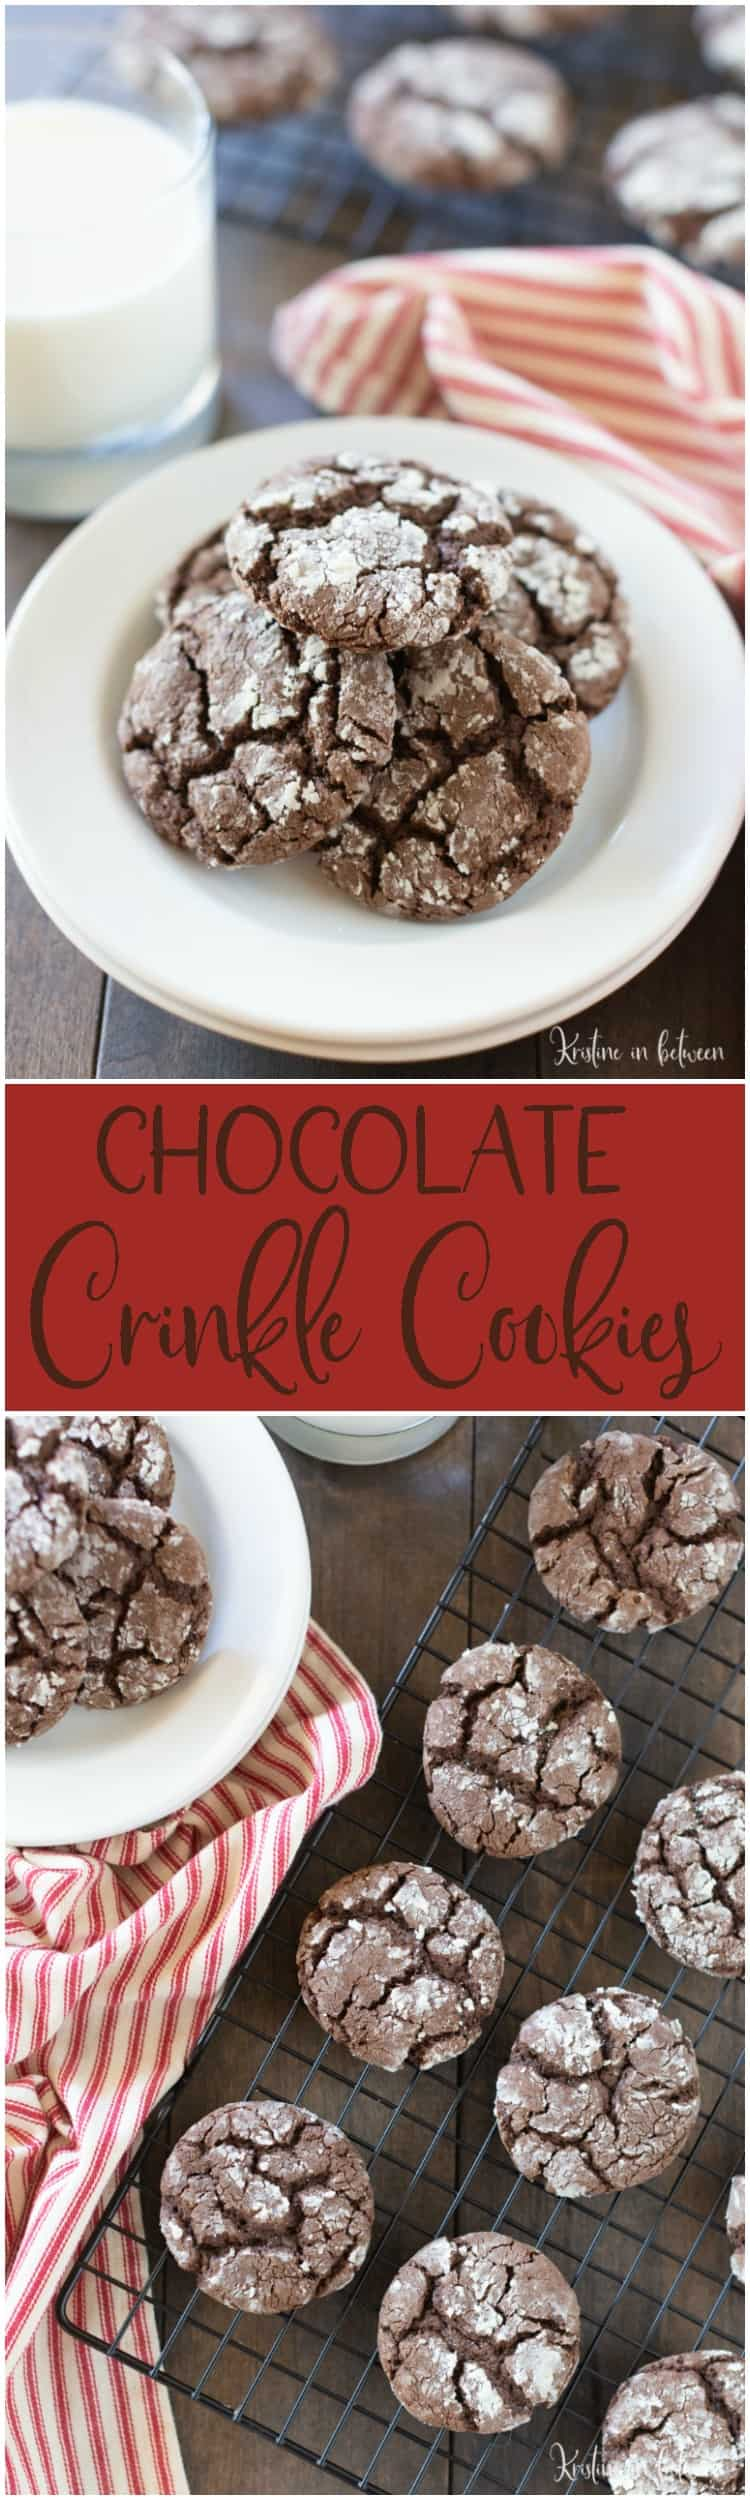 Chocolate crinkle cookies recipe on a white plate and a cooling rack